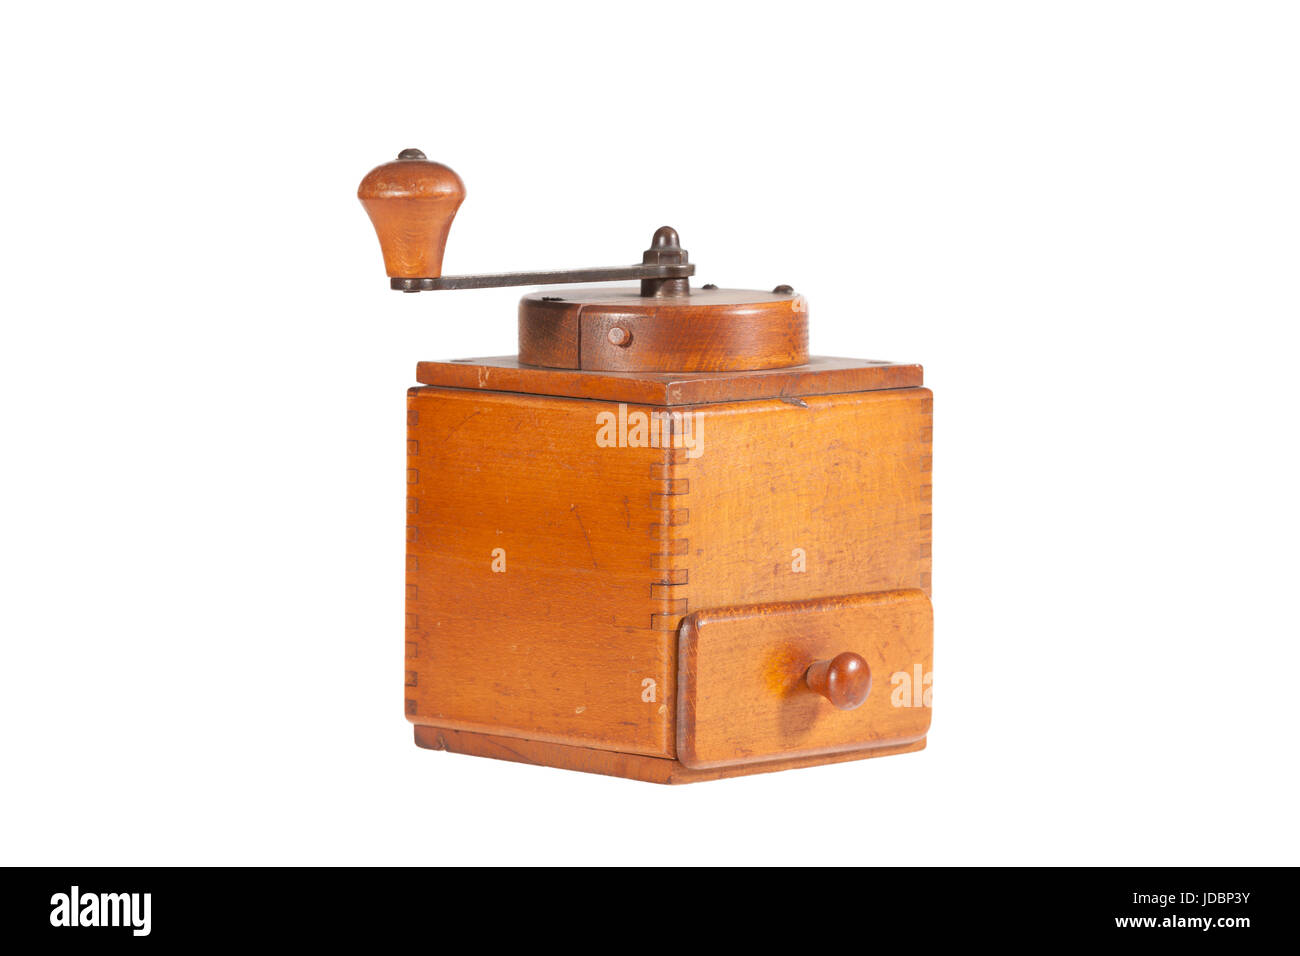 vintage coffee mill isolated on white backgroung - Stock Image